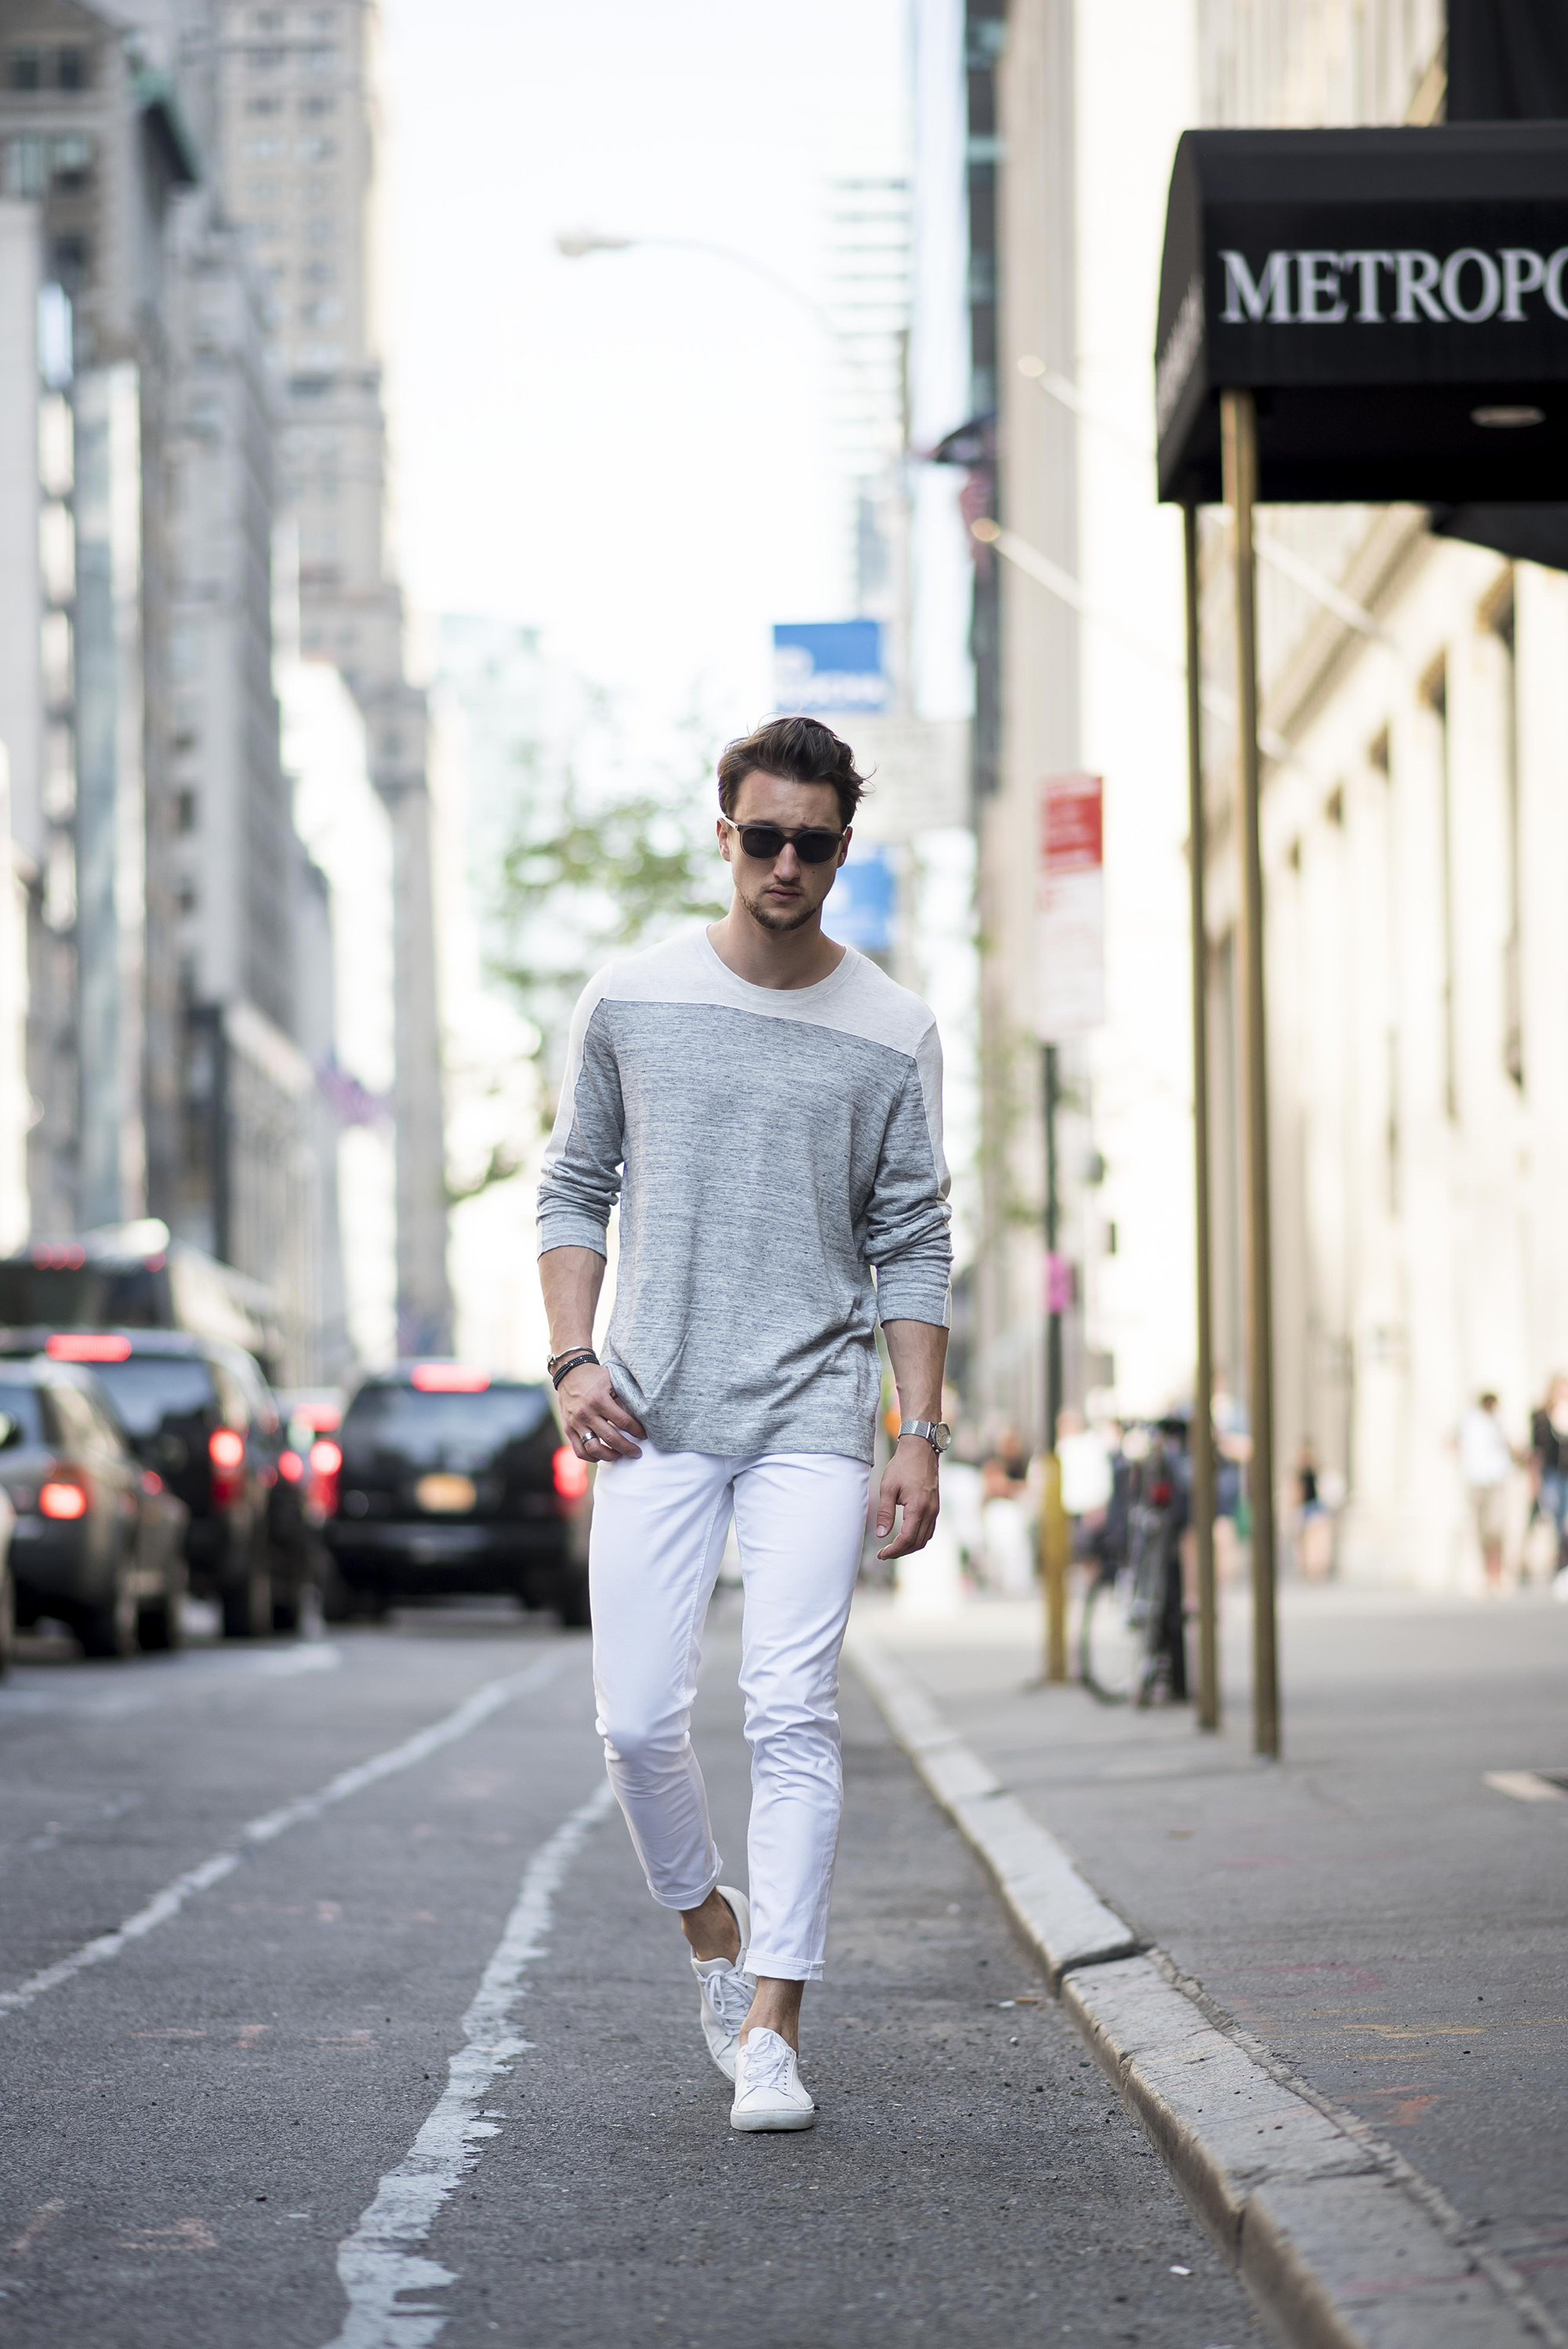 How to 3 ways to wear white jeans for men | One Dapper Street